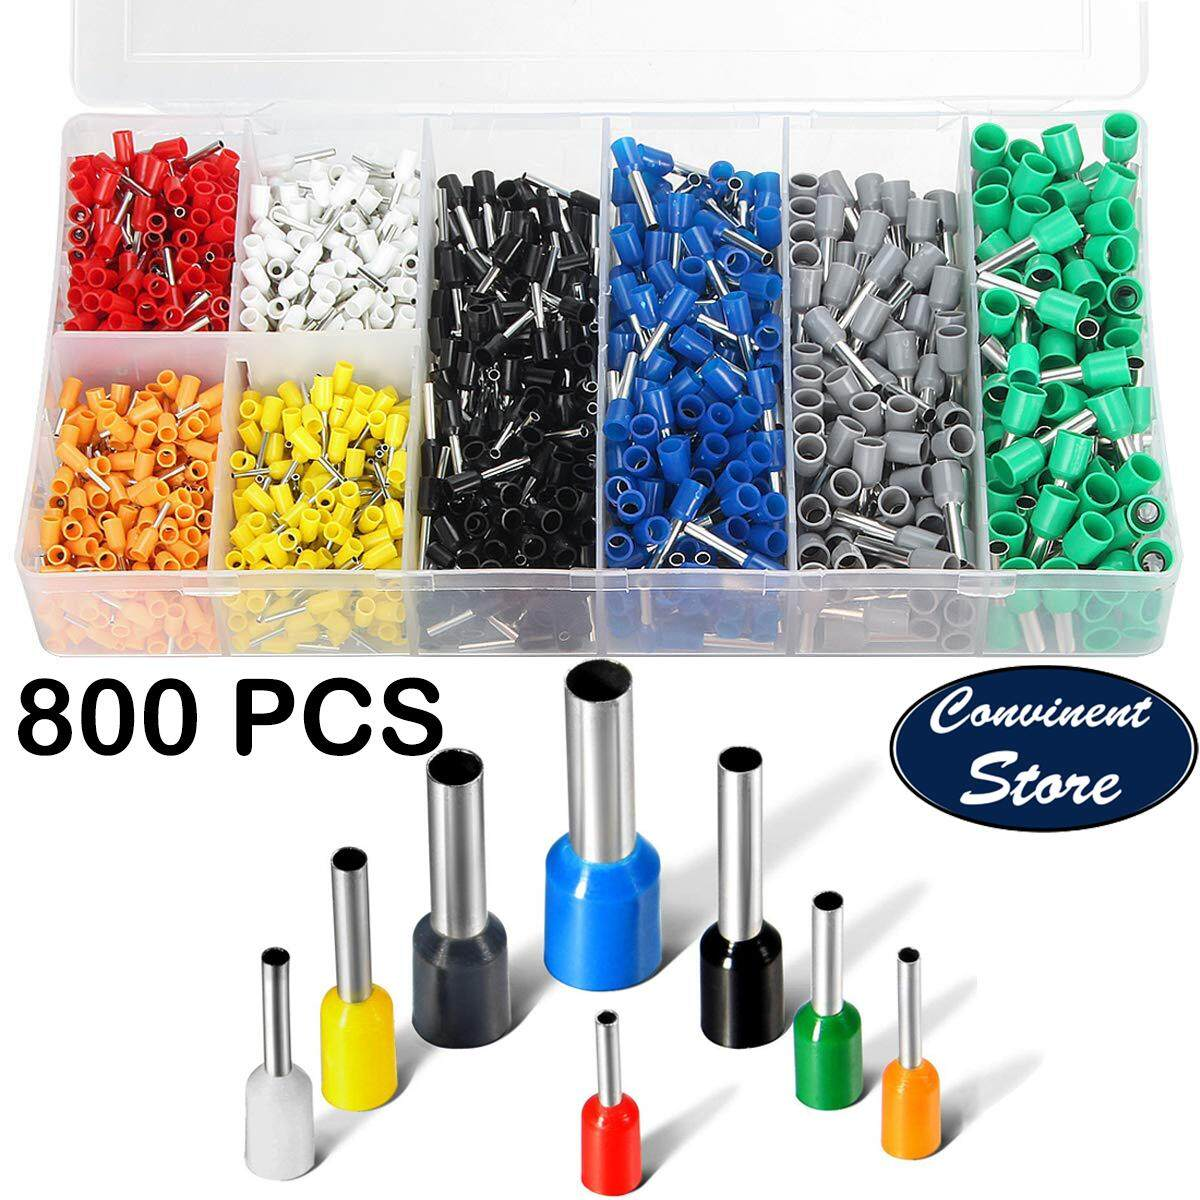 ✅【800PCS】Assortment Ferrule Wire Copper Crimp Connector, Wire Terminals Kit, Wire Connector Kit, Insulated Cord Pin End Terminal AWG 22-10 Kit with Box- Convinent Store